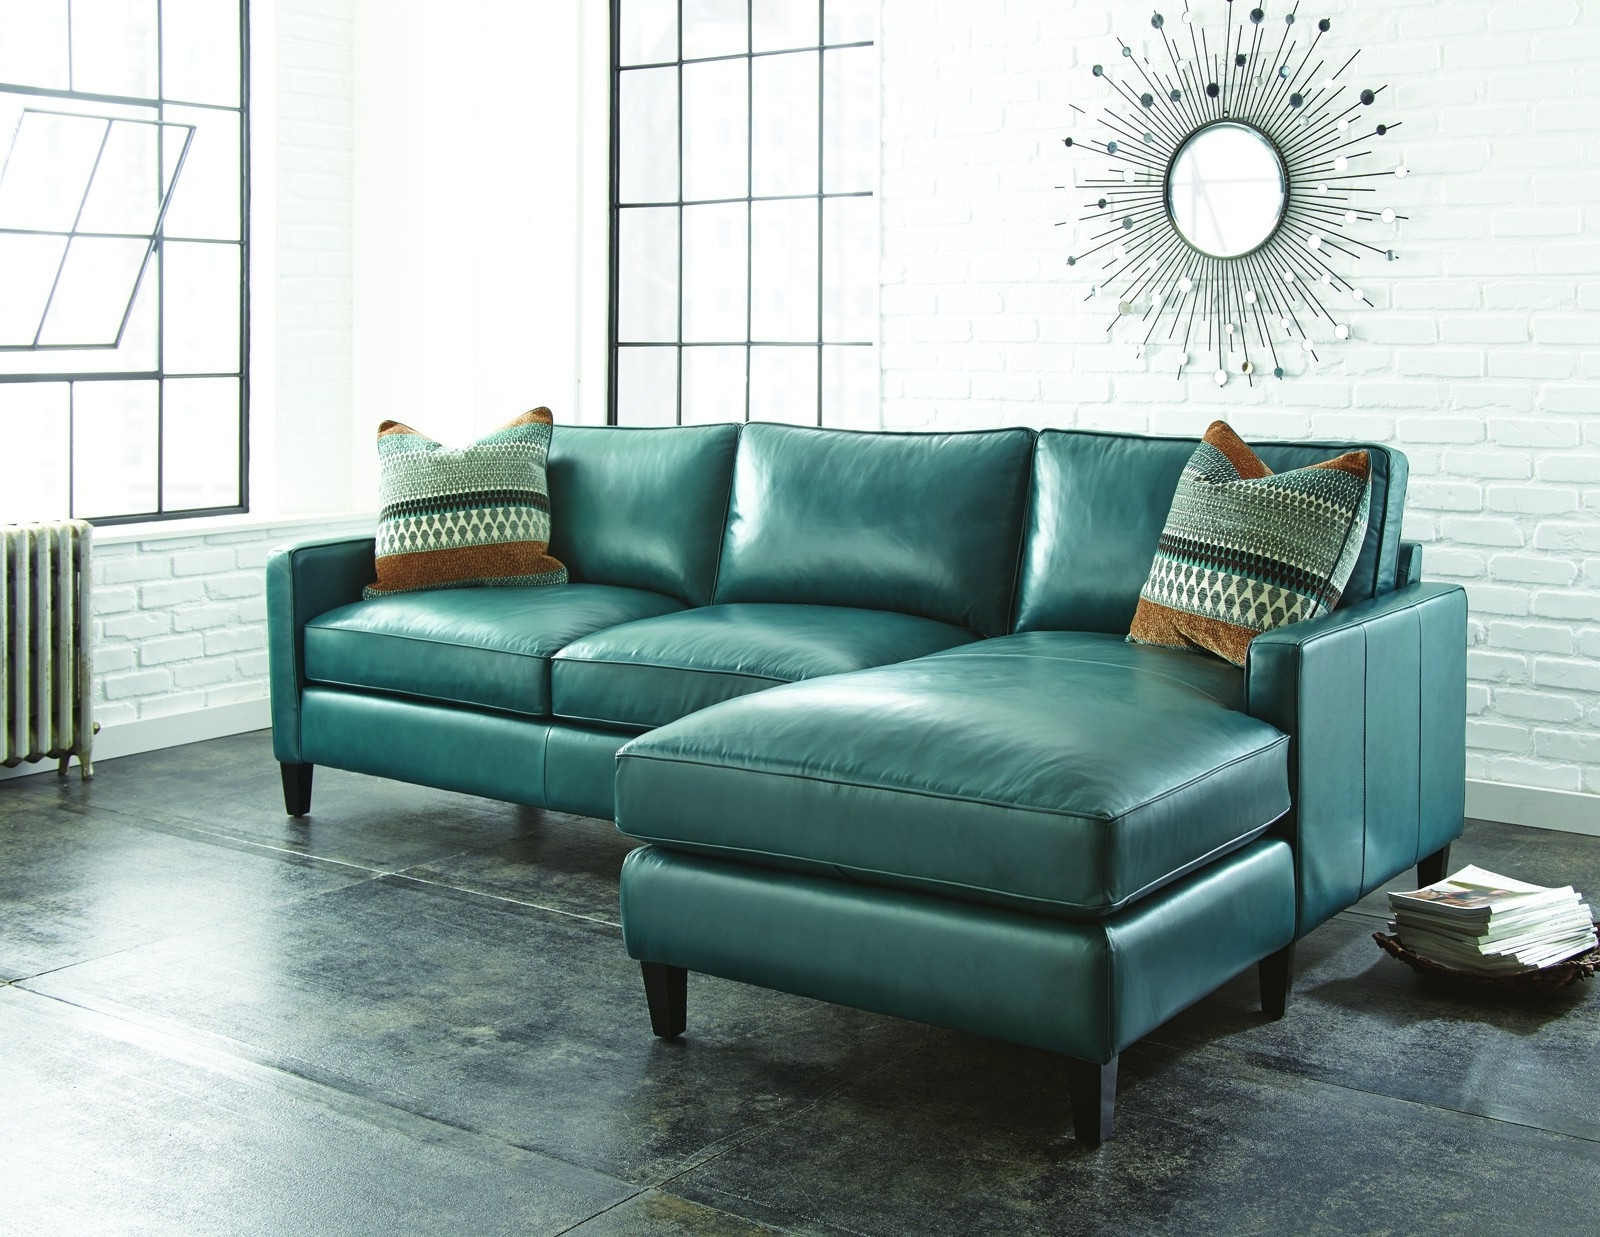 New Ideas Green Leather Sectional Sofa And Would You Put This Teal With Regard To Most Current Media Room Sectional Sofas (View 13 of 20)